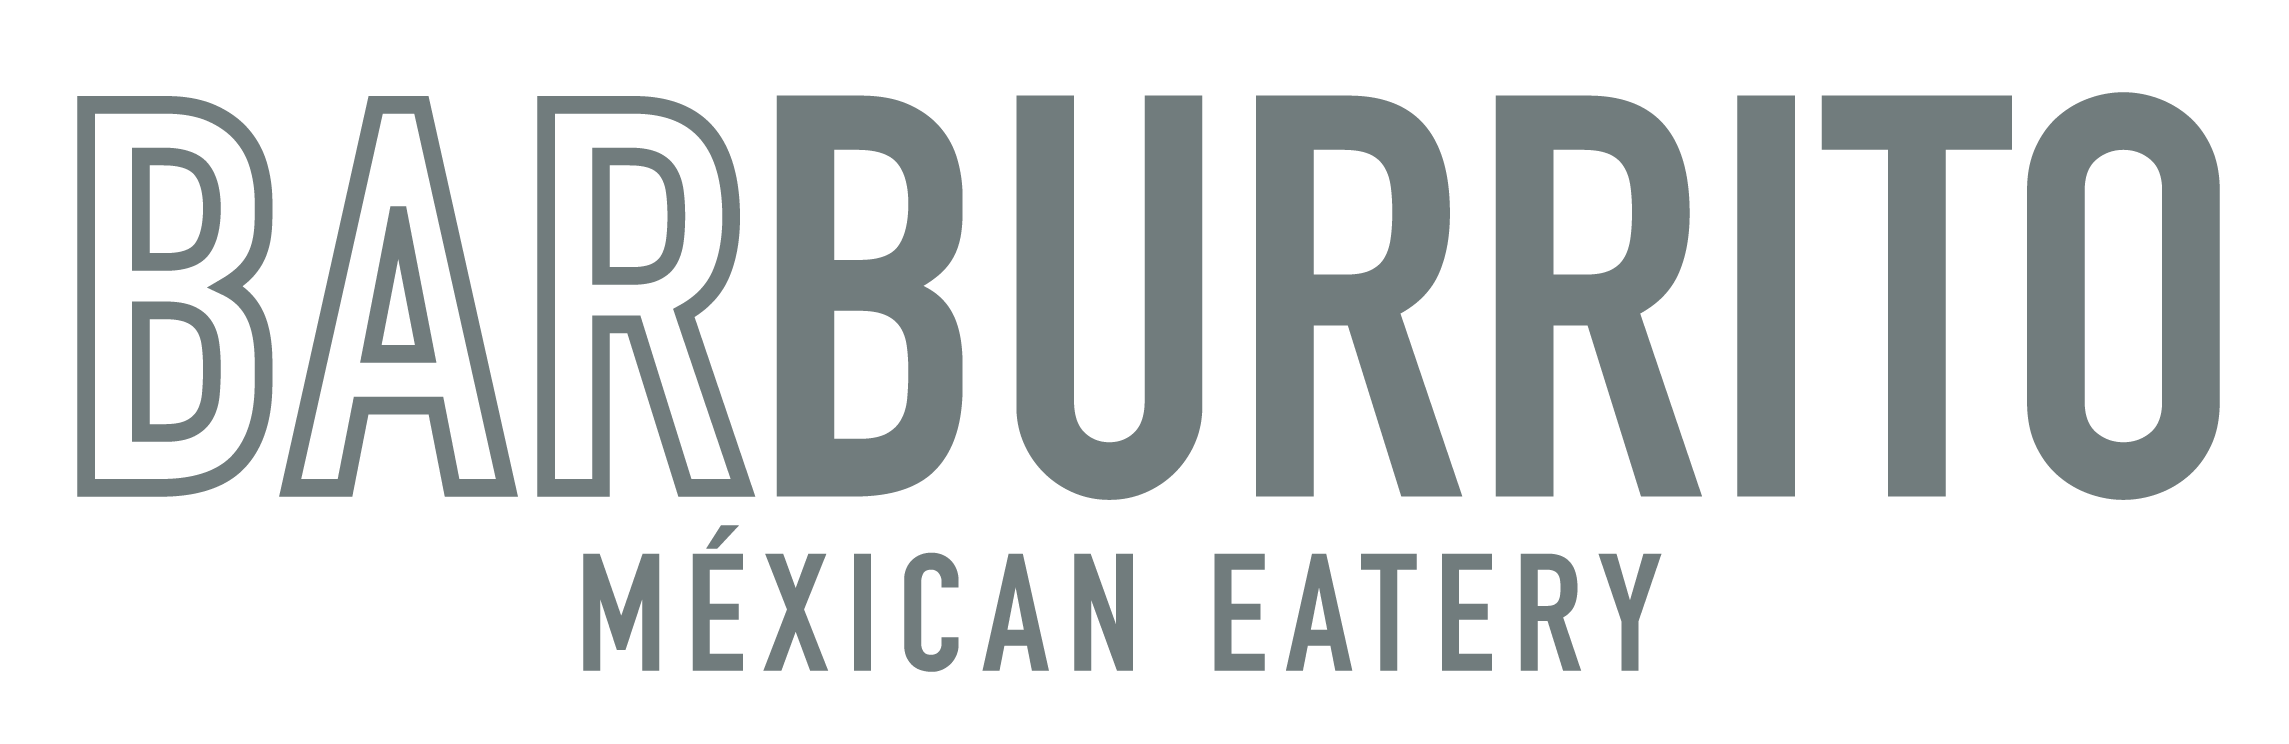 Barburrito Mexican Eatery Logo